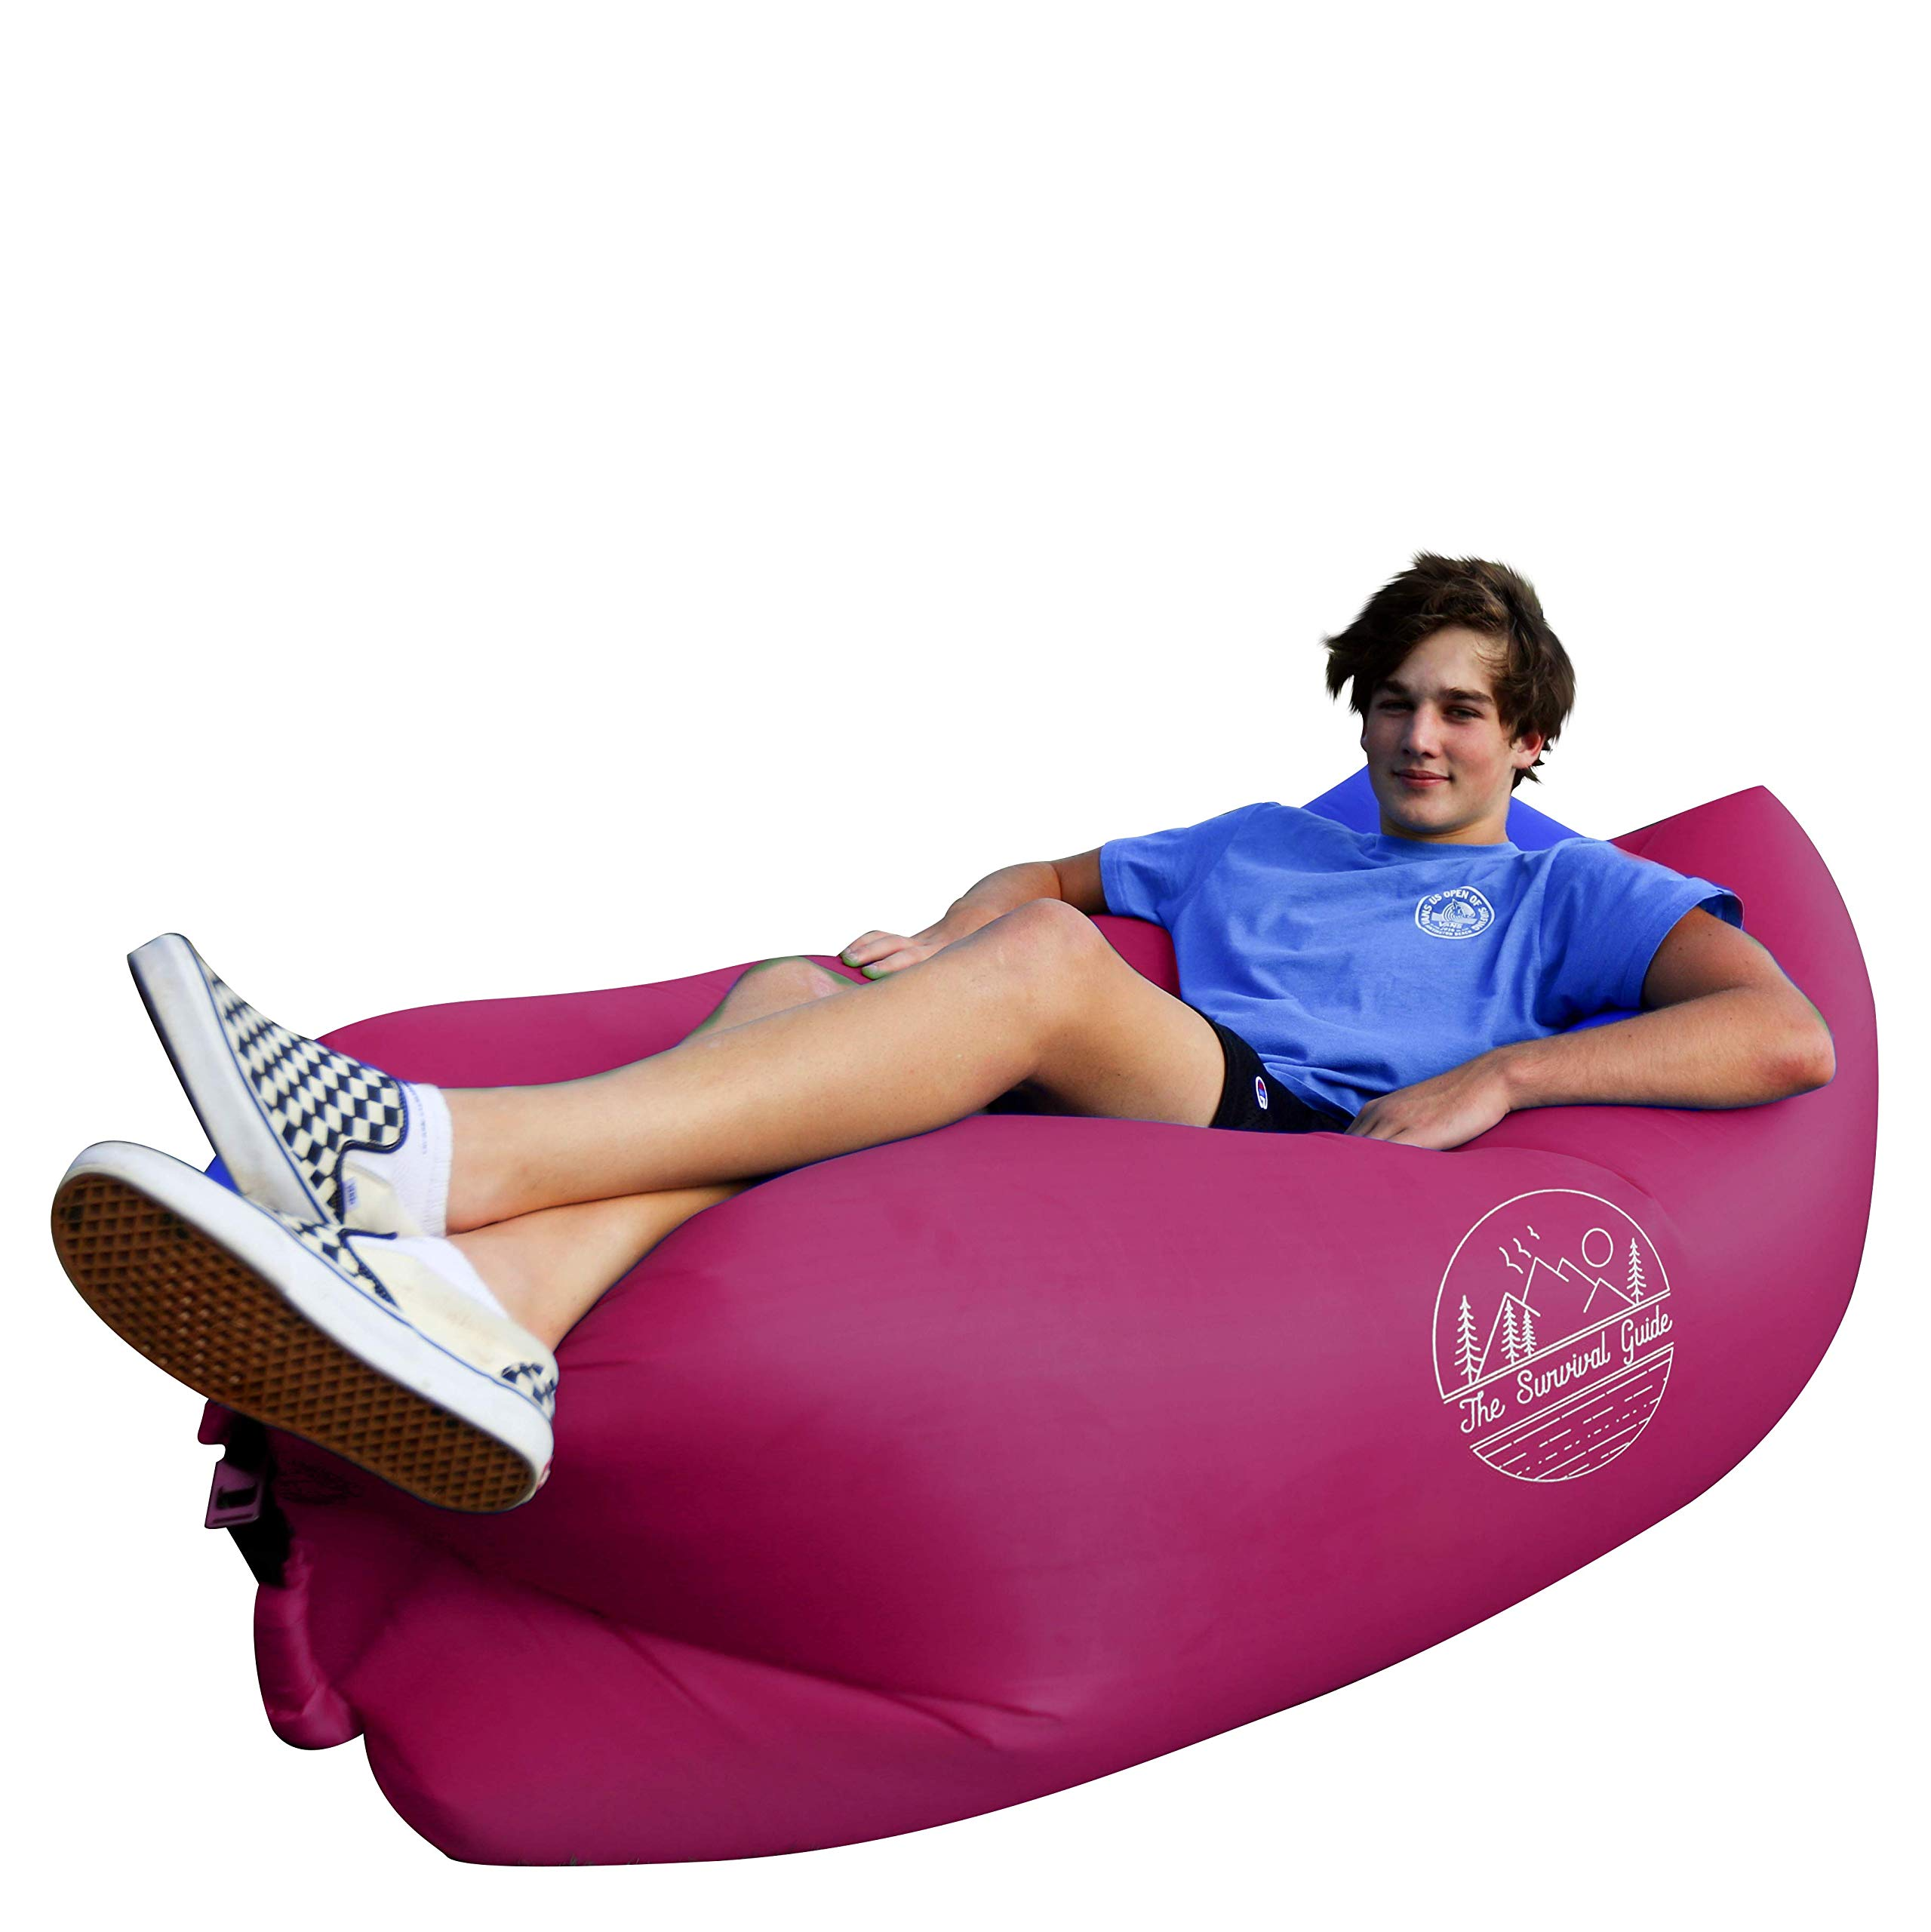 The Survival Guide Inflatable Air Sofa | Portable Lounger Couch for Indoor & Outdoor Use Camping, Beach & Festival | Easy to Inflate Hammock Couches with Carry-on Bag | Pillow-Shaped Headrest Design by The Survival Guide